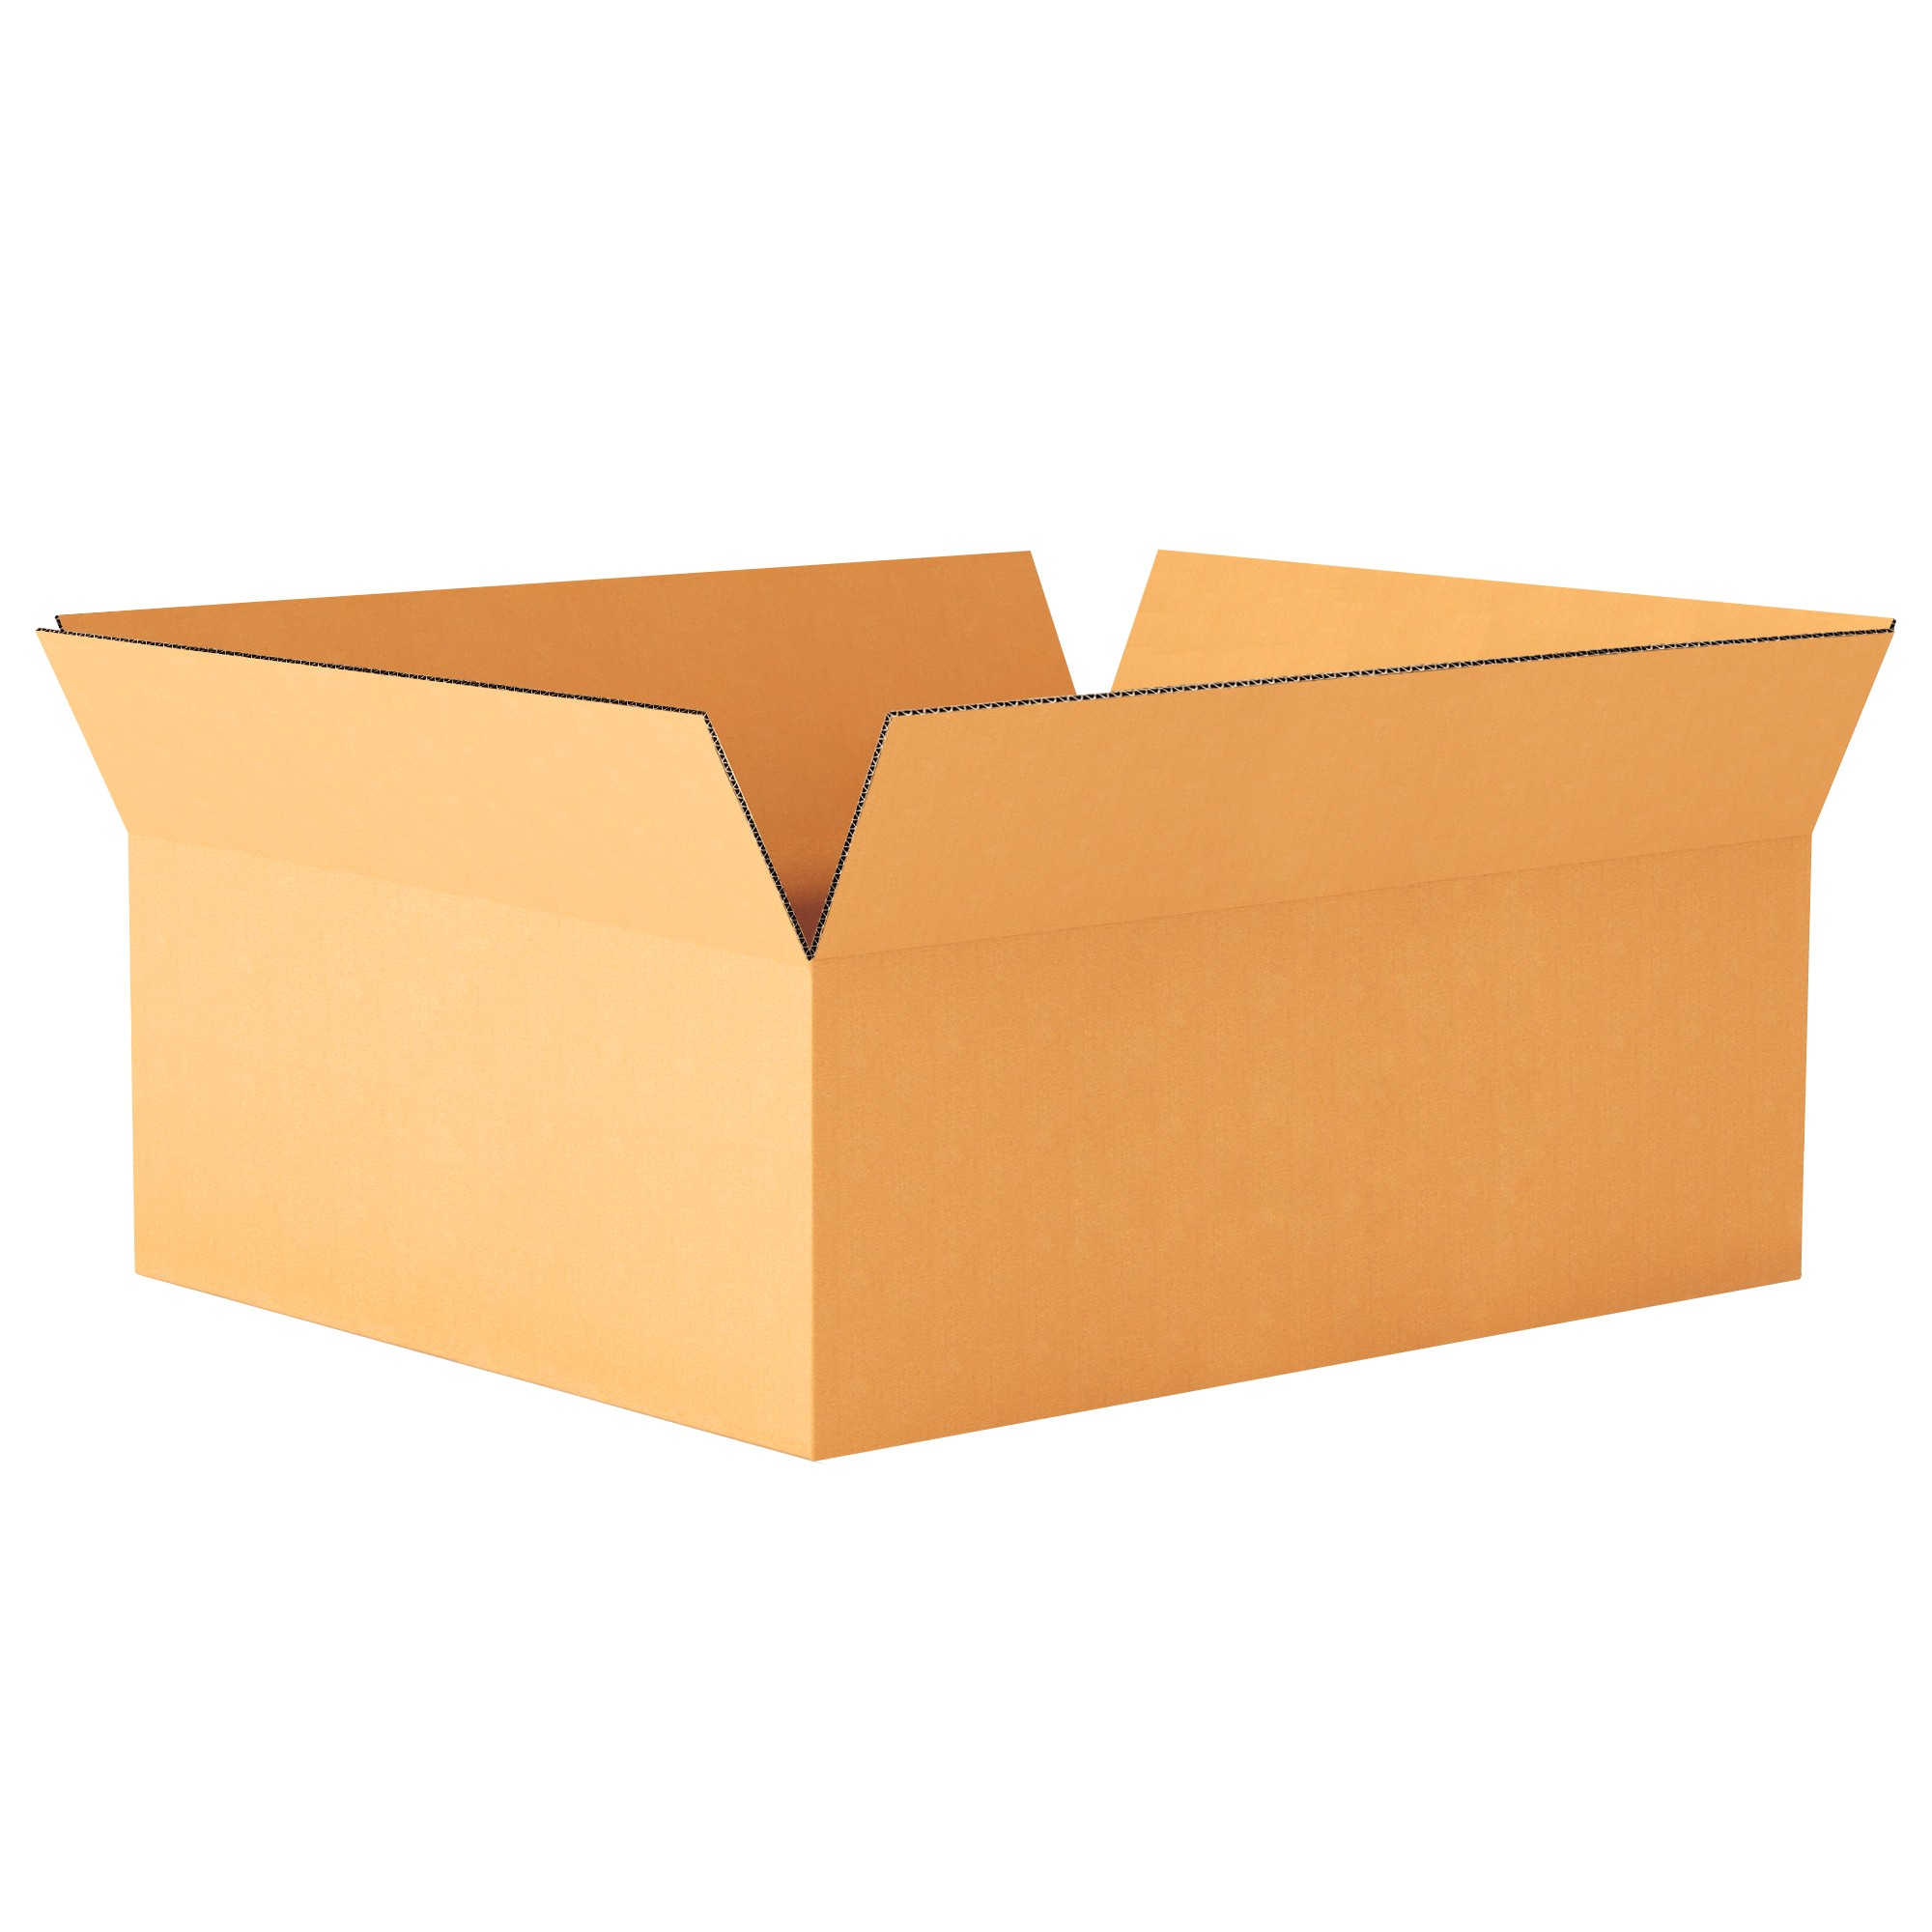 "TOTALPACK® 21 1/2 x 14 1/2 x 9"" Single Wall Corrugated Boxes 25 Units"